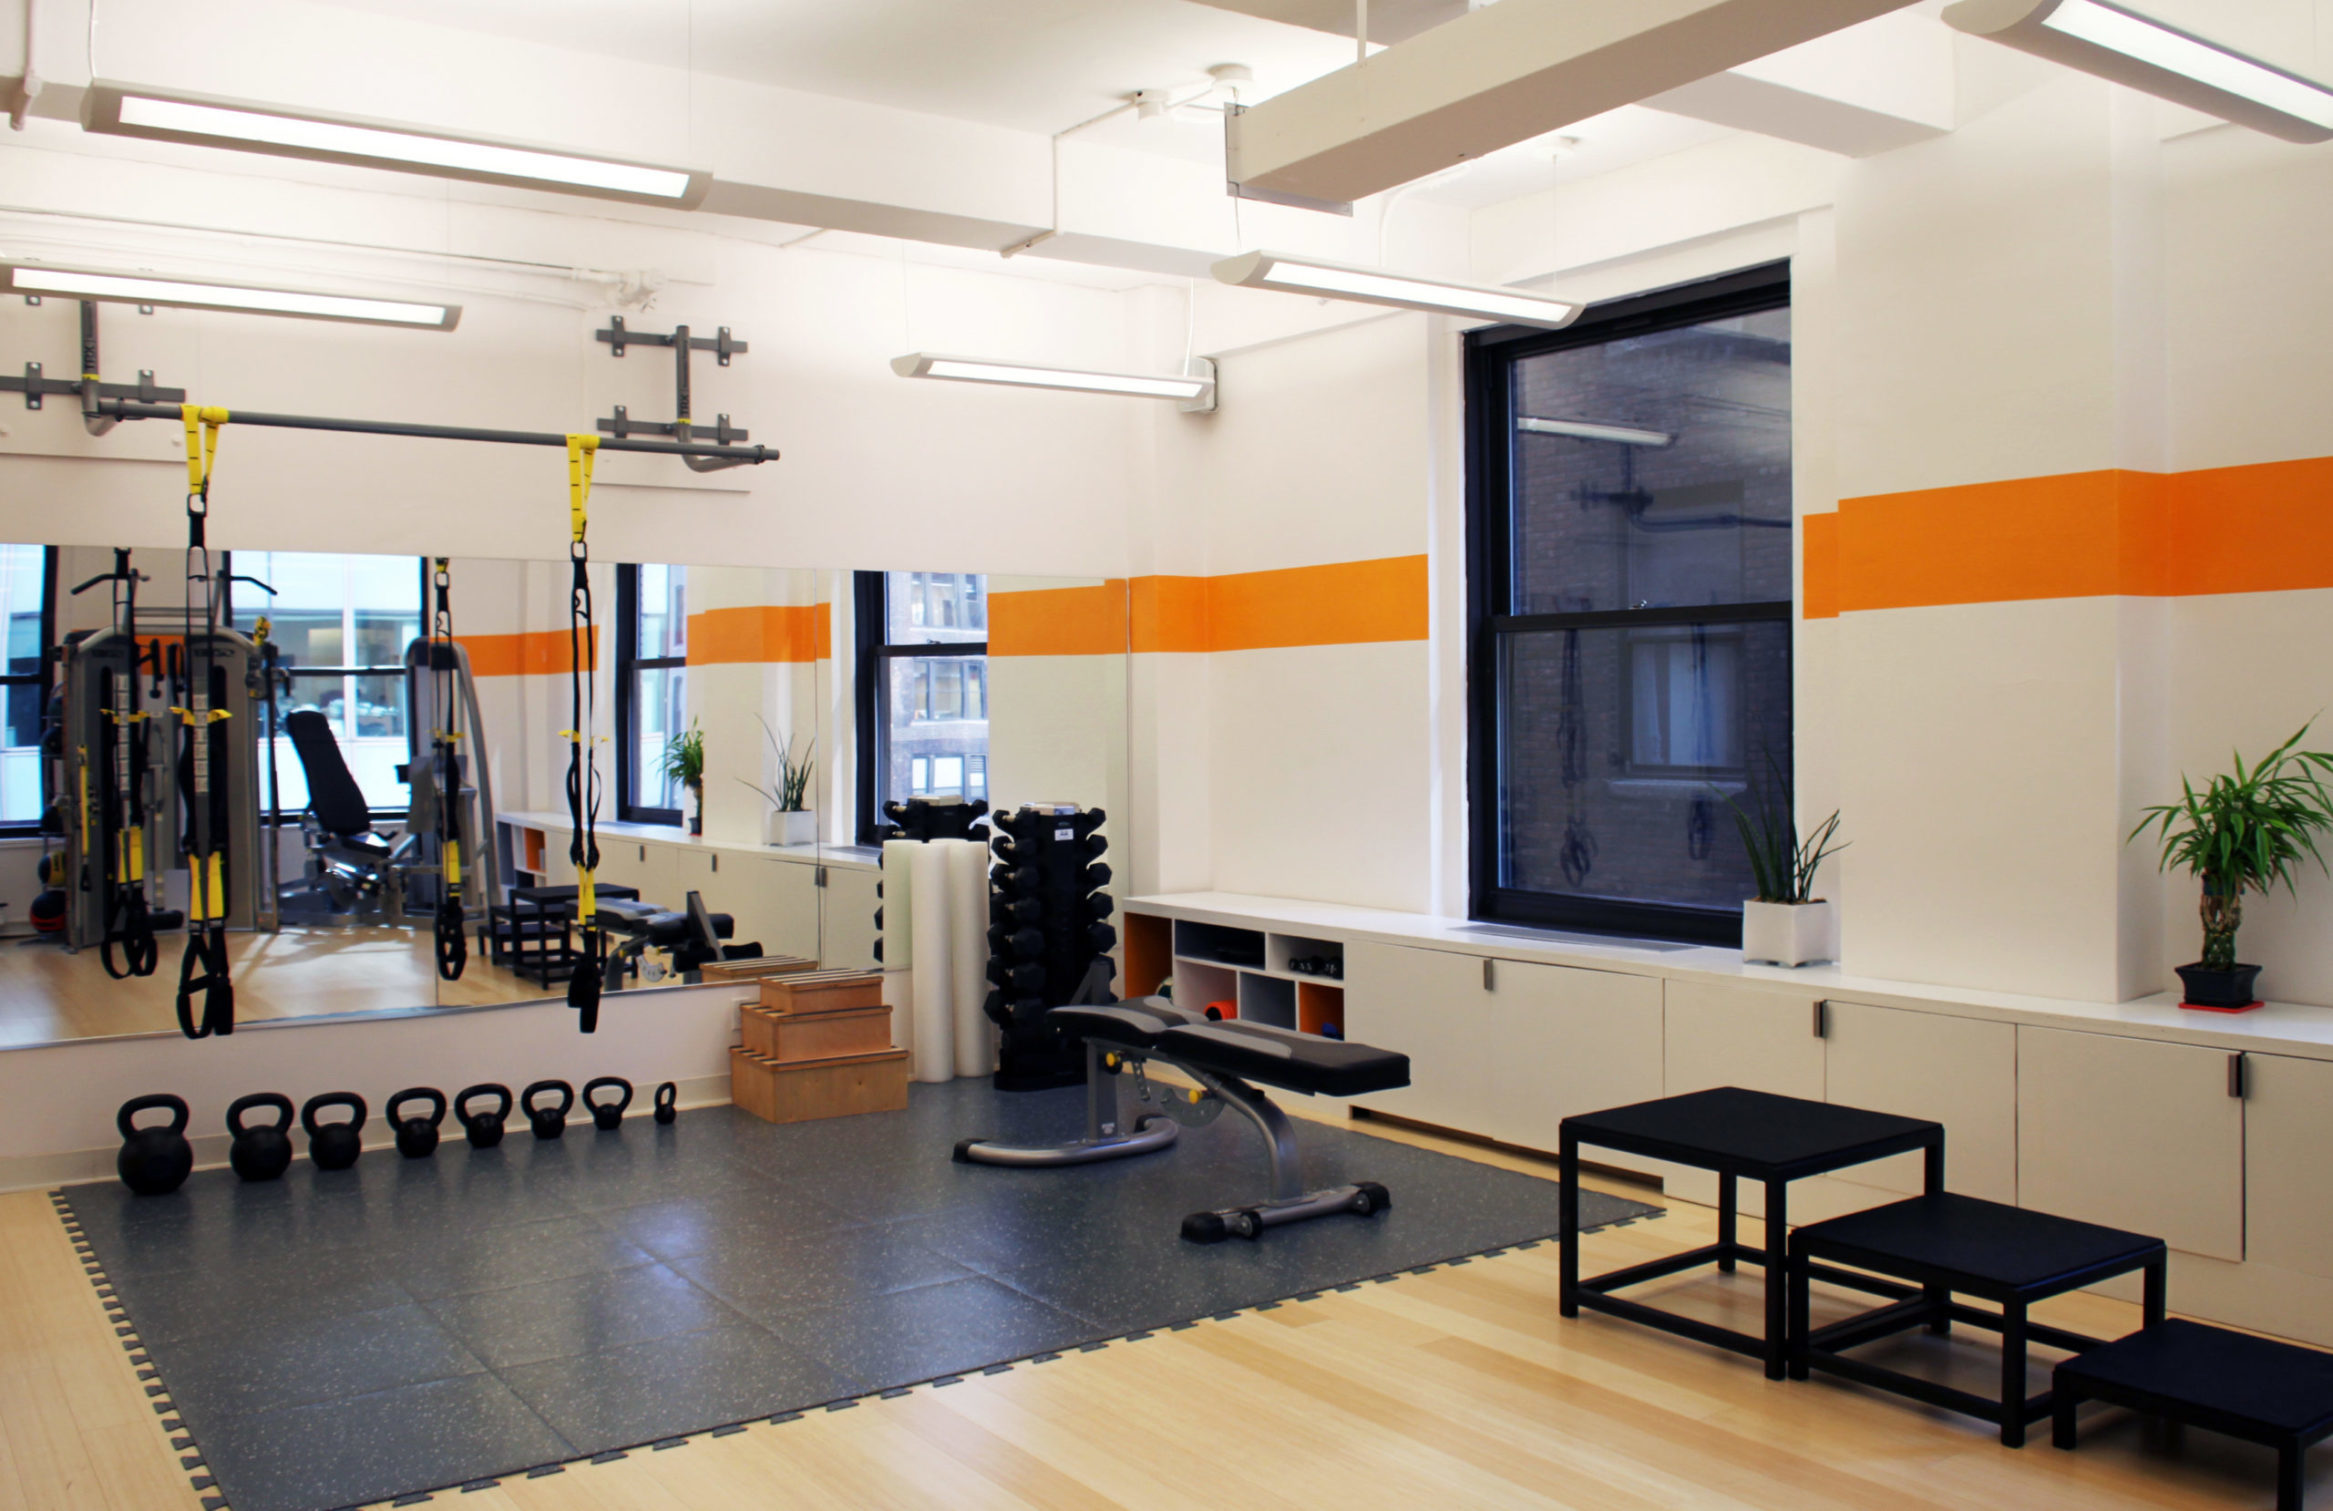 befit gym & therapy facility, designed by EXD Architecture, New York City